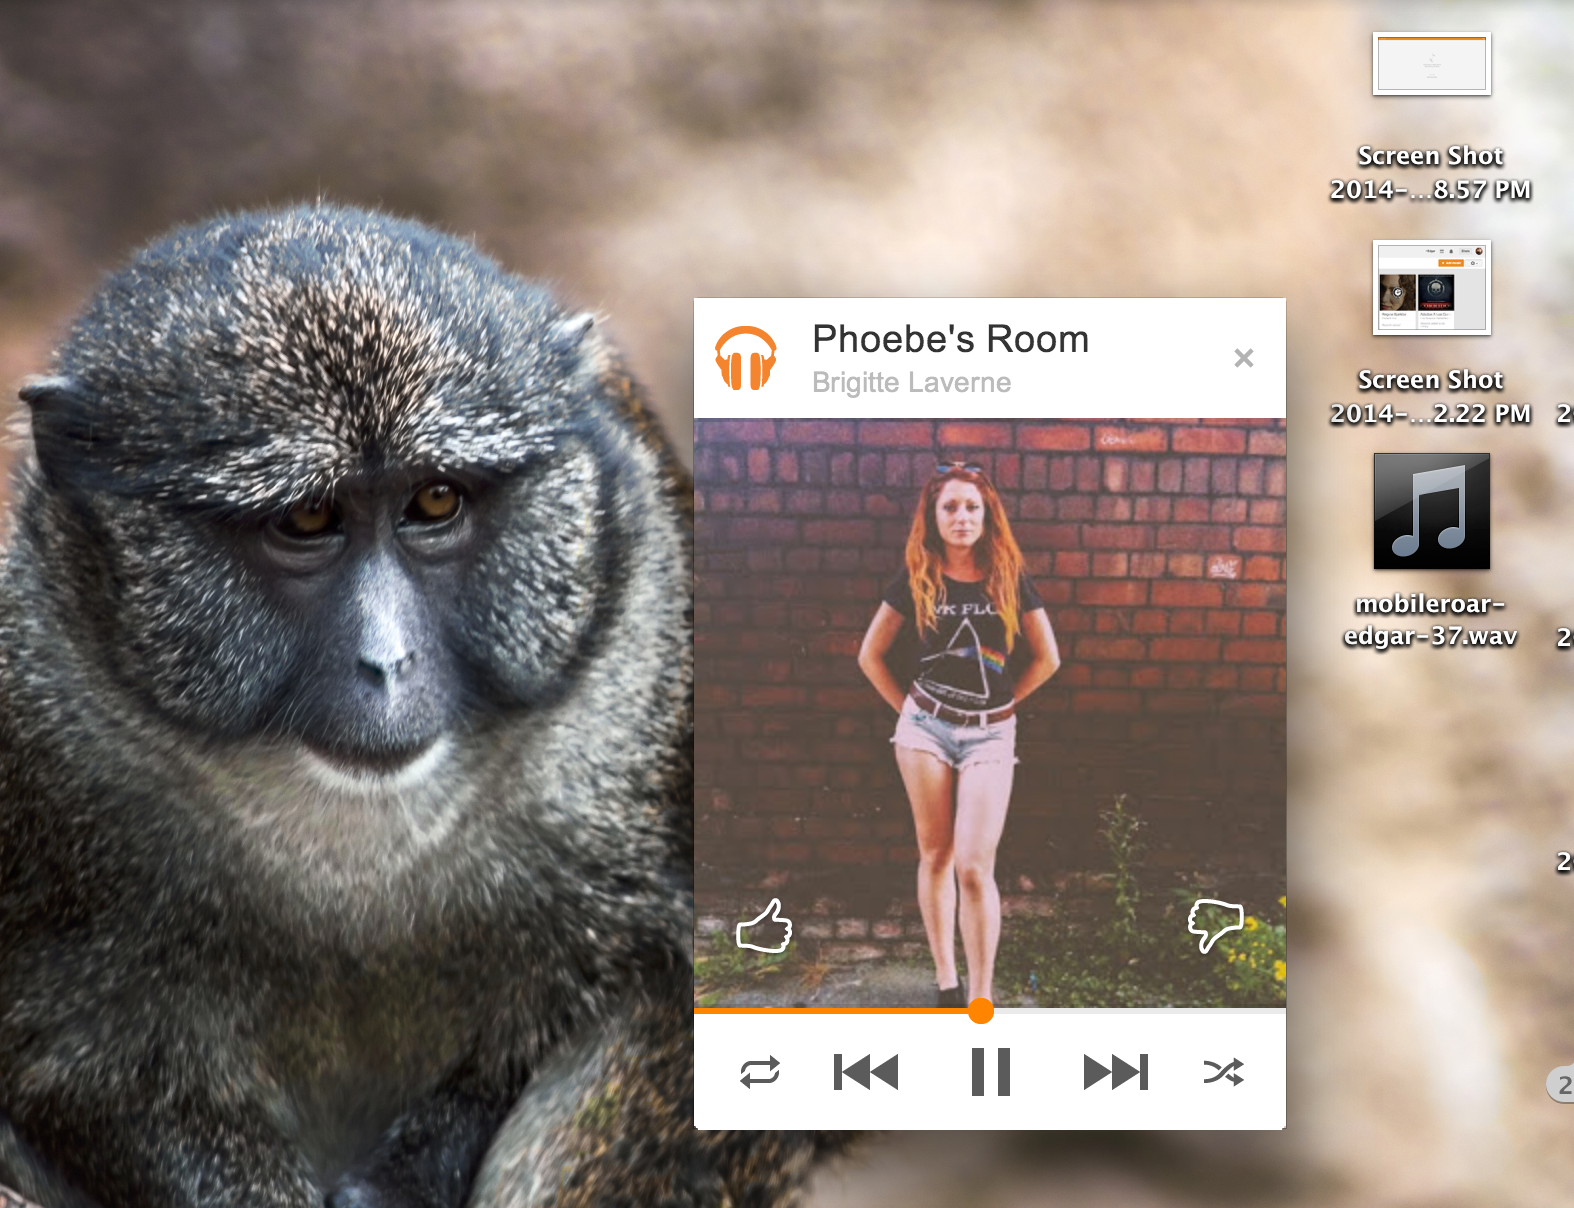 Upload to Google Play Music straight from Chrome and